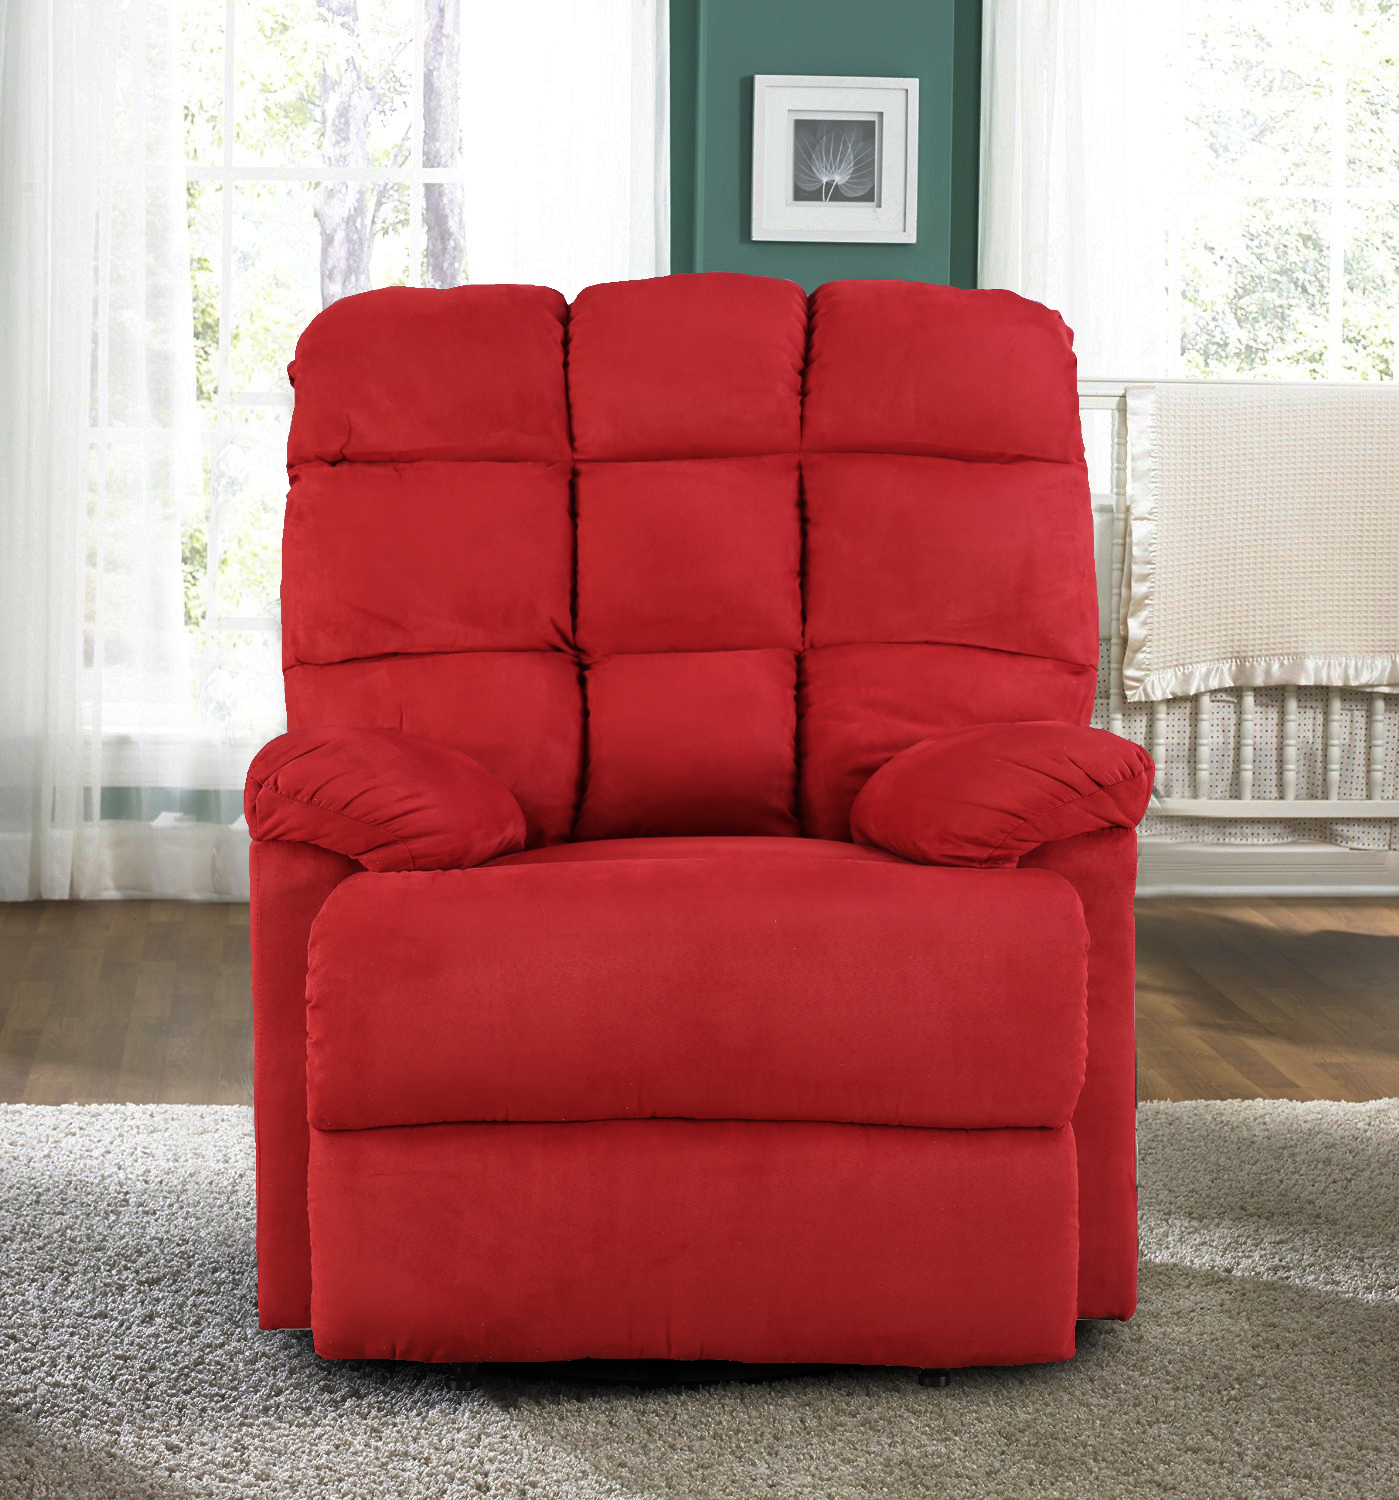 Graham Fabric Single Seater Recliner in Red Colour by HomeTown